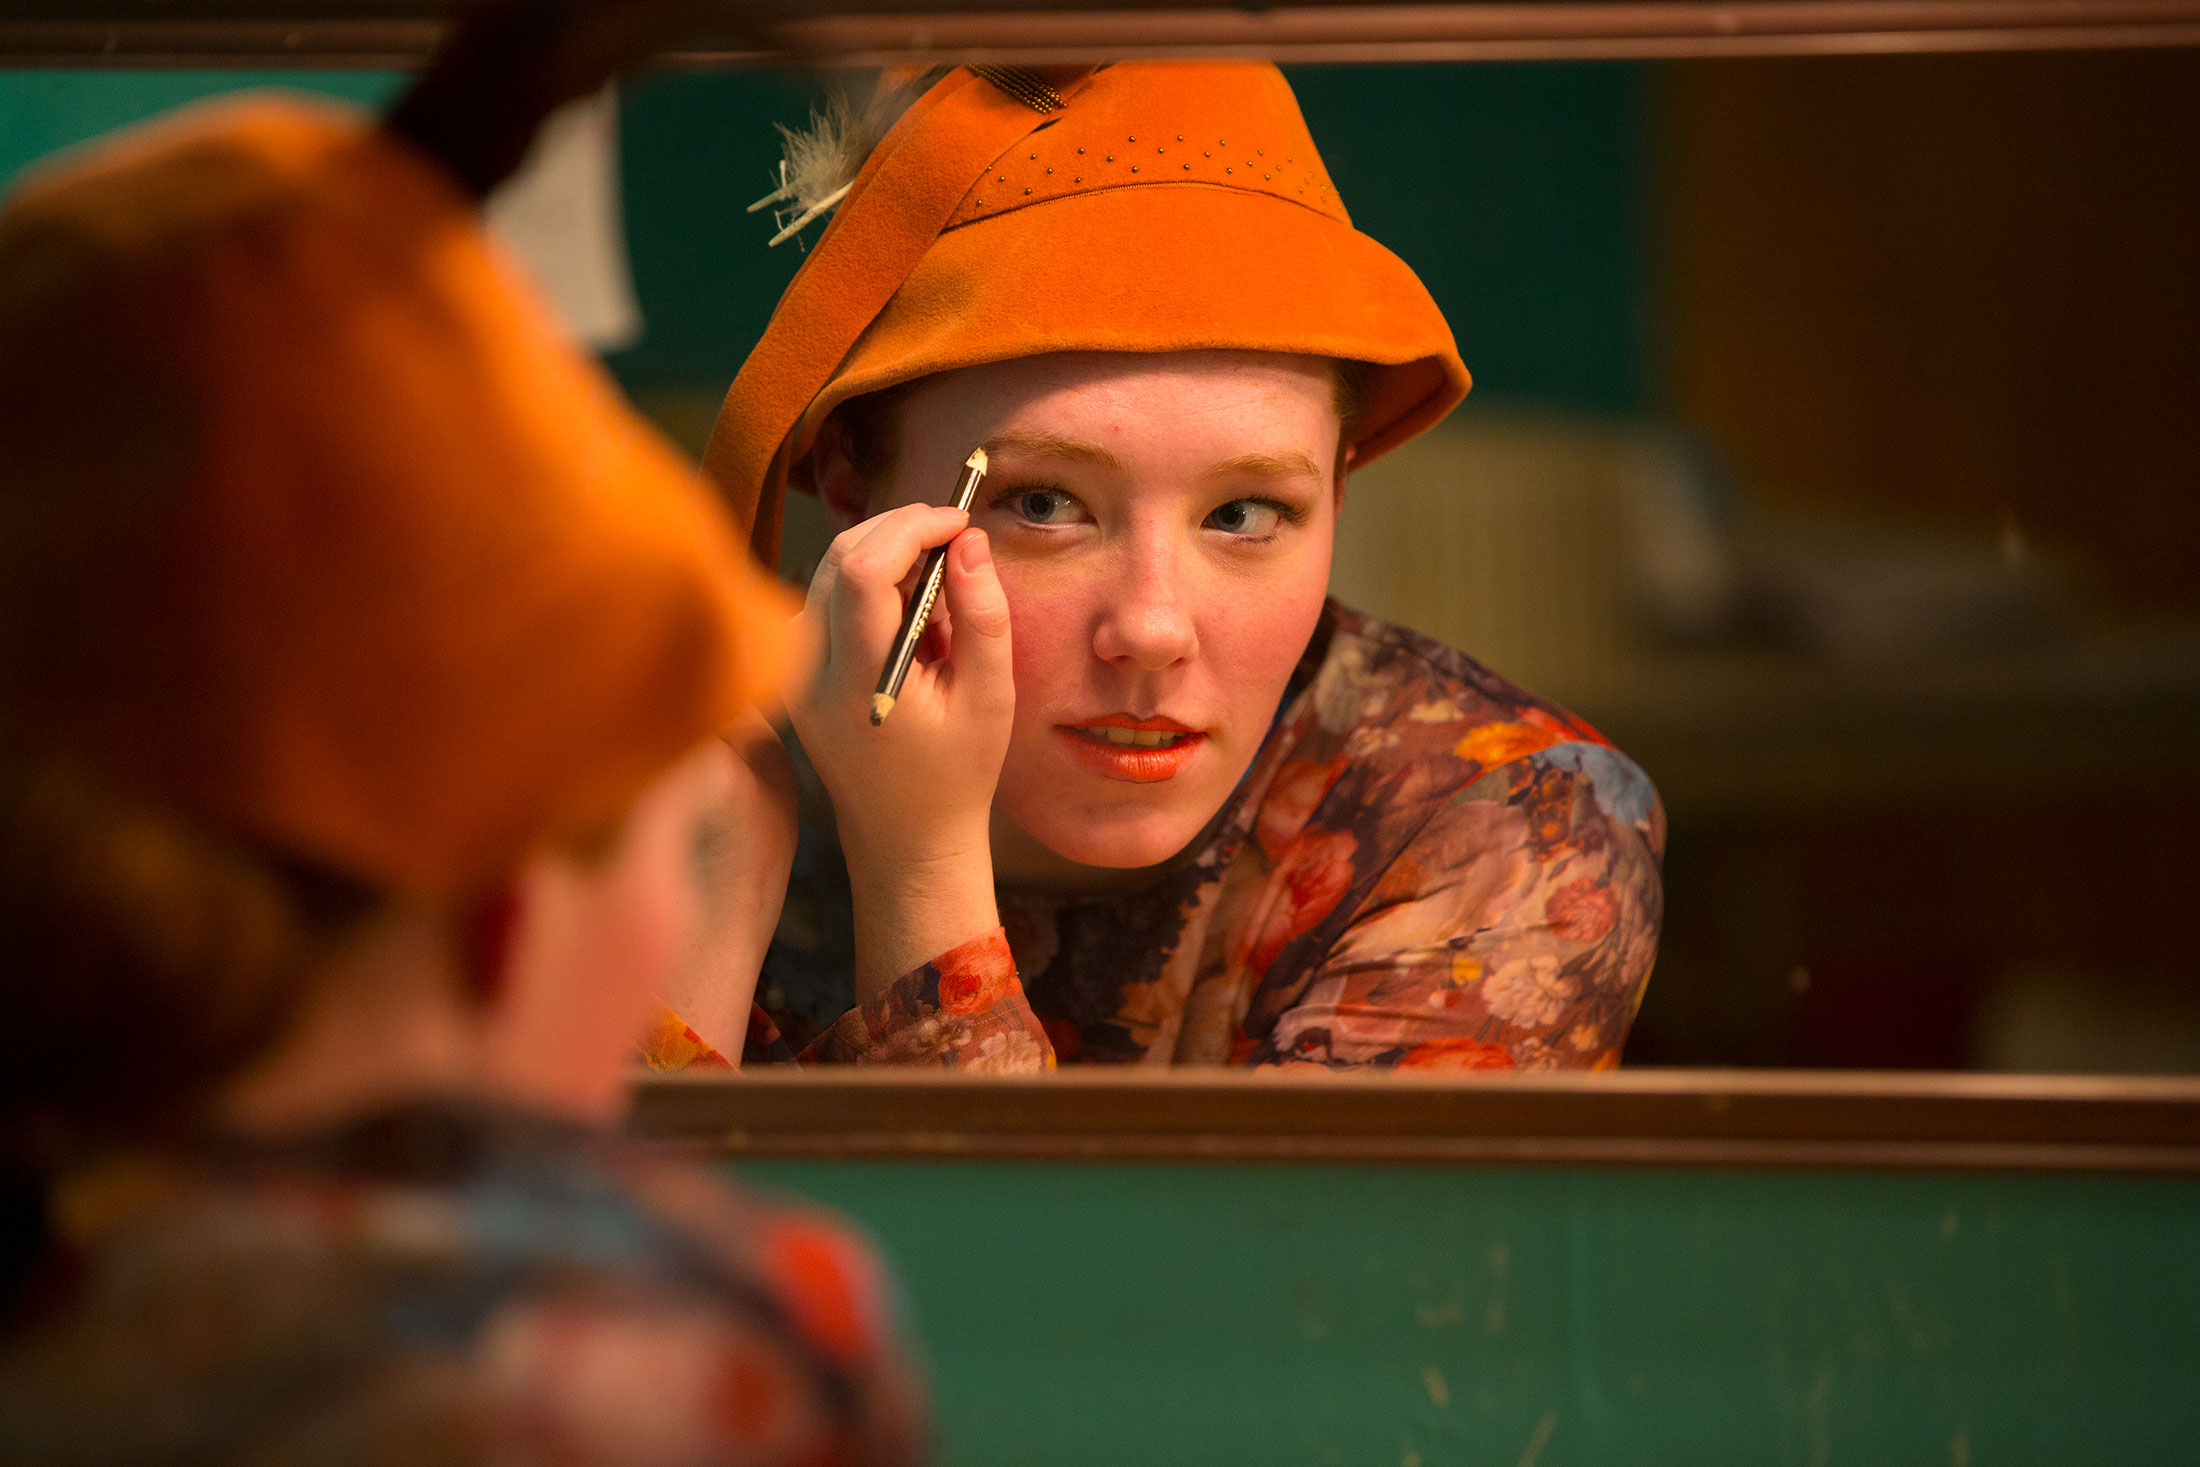 Carroll College Theatre student applying make-up in a mirror